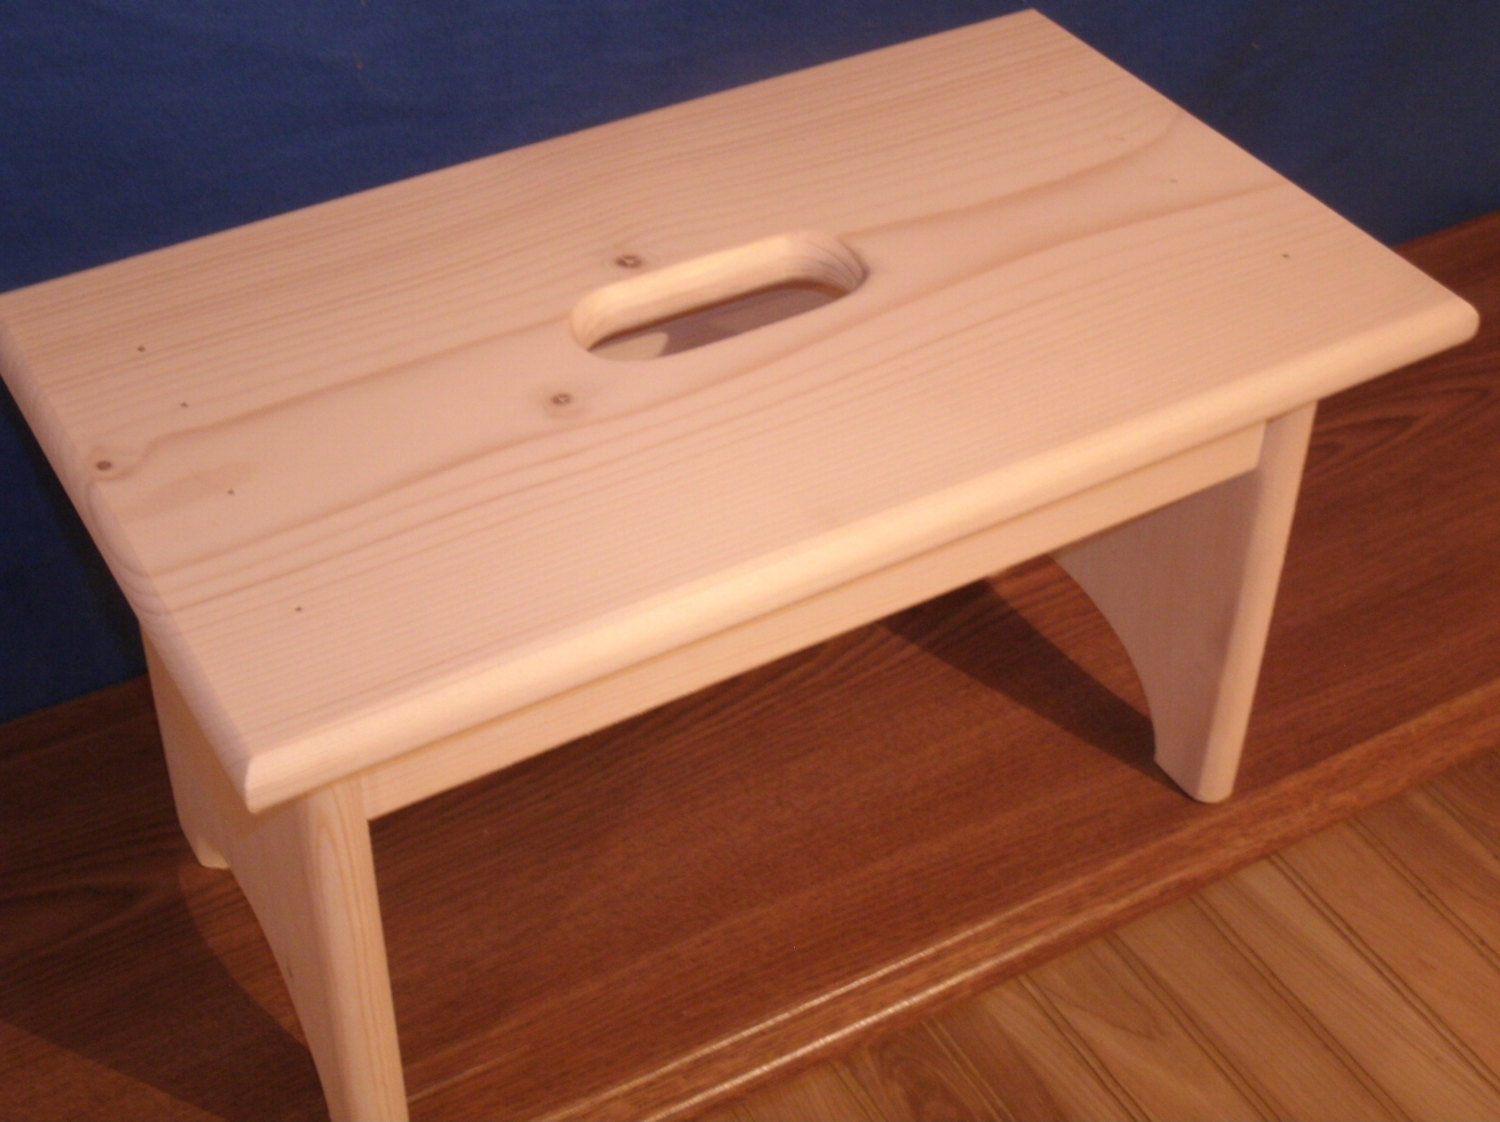 Wooden step stool with hand hole unfinished pine